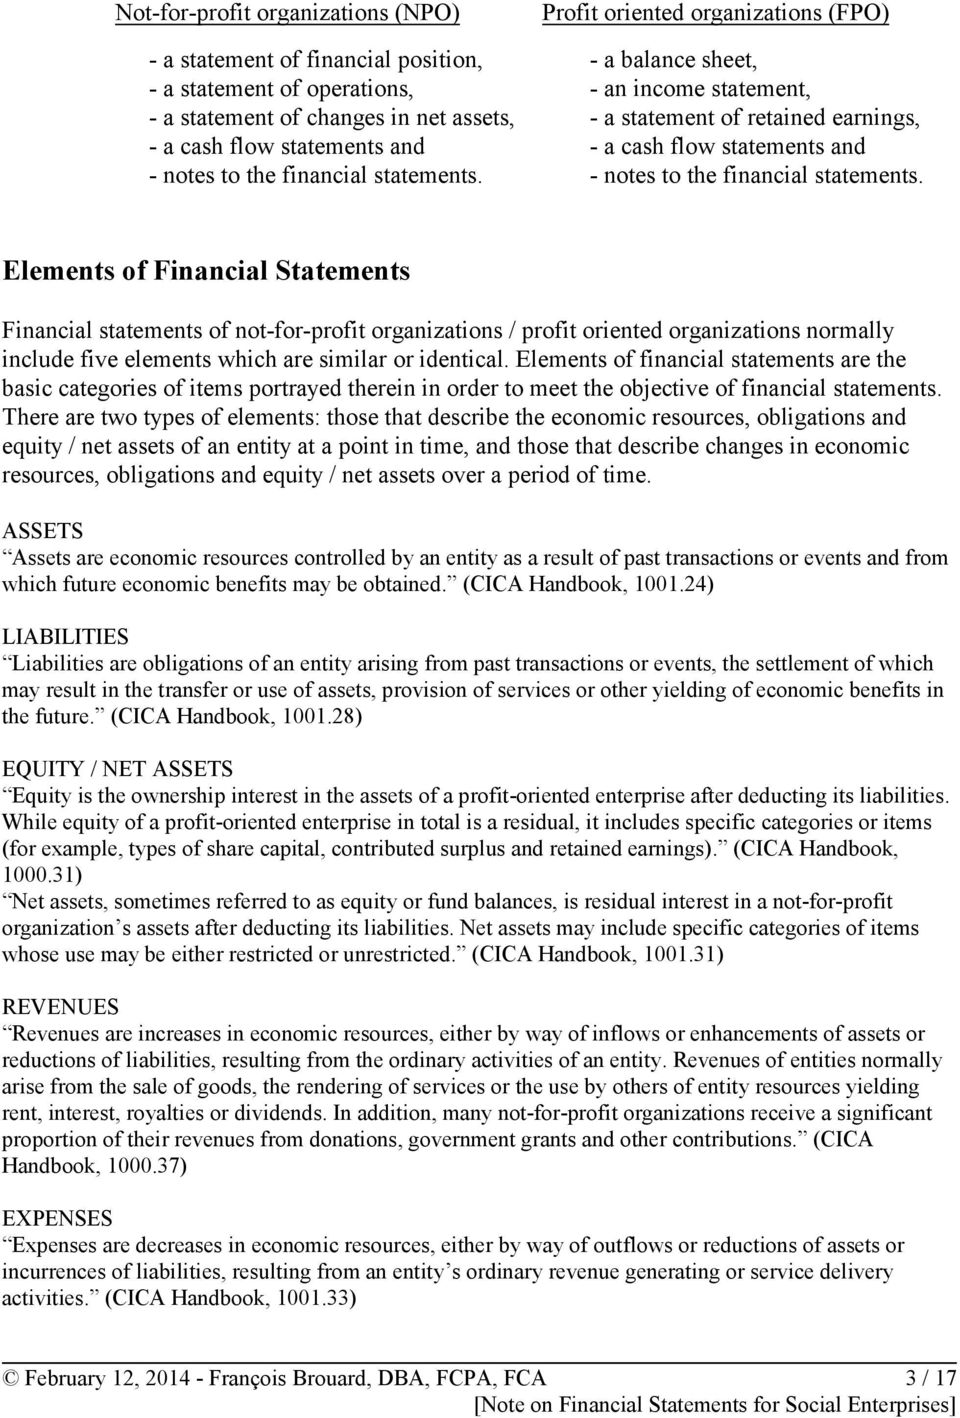 Elements of Financial Statements Financial statements of not-for-profit organizations / profit oriented organizations normally include five elements which are similar or identical.